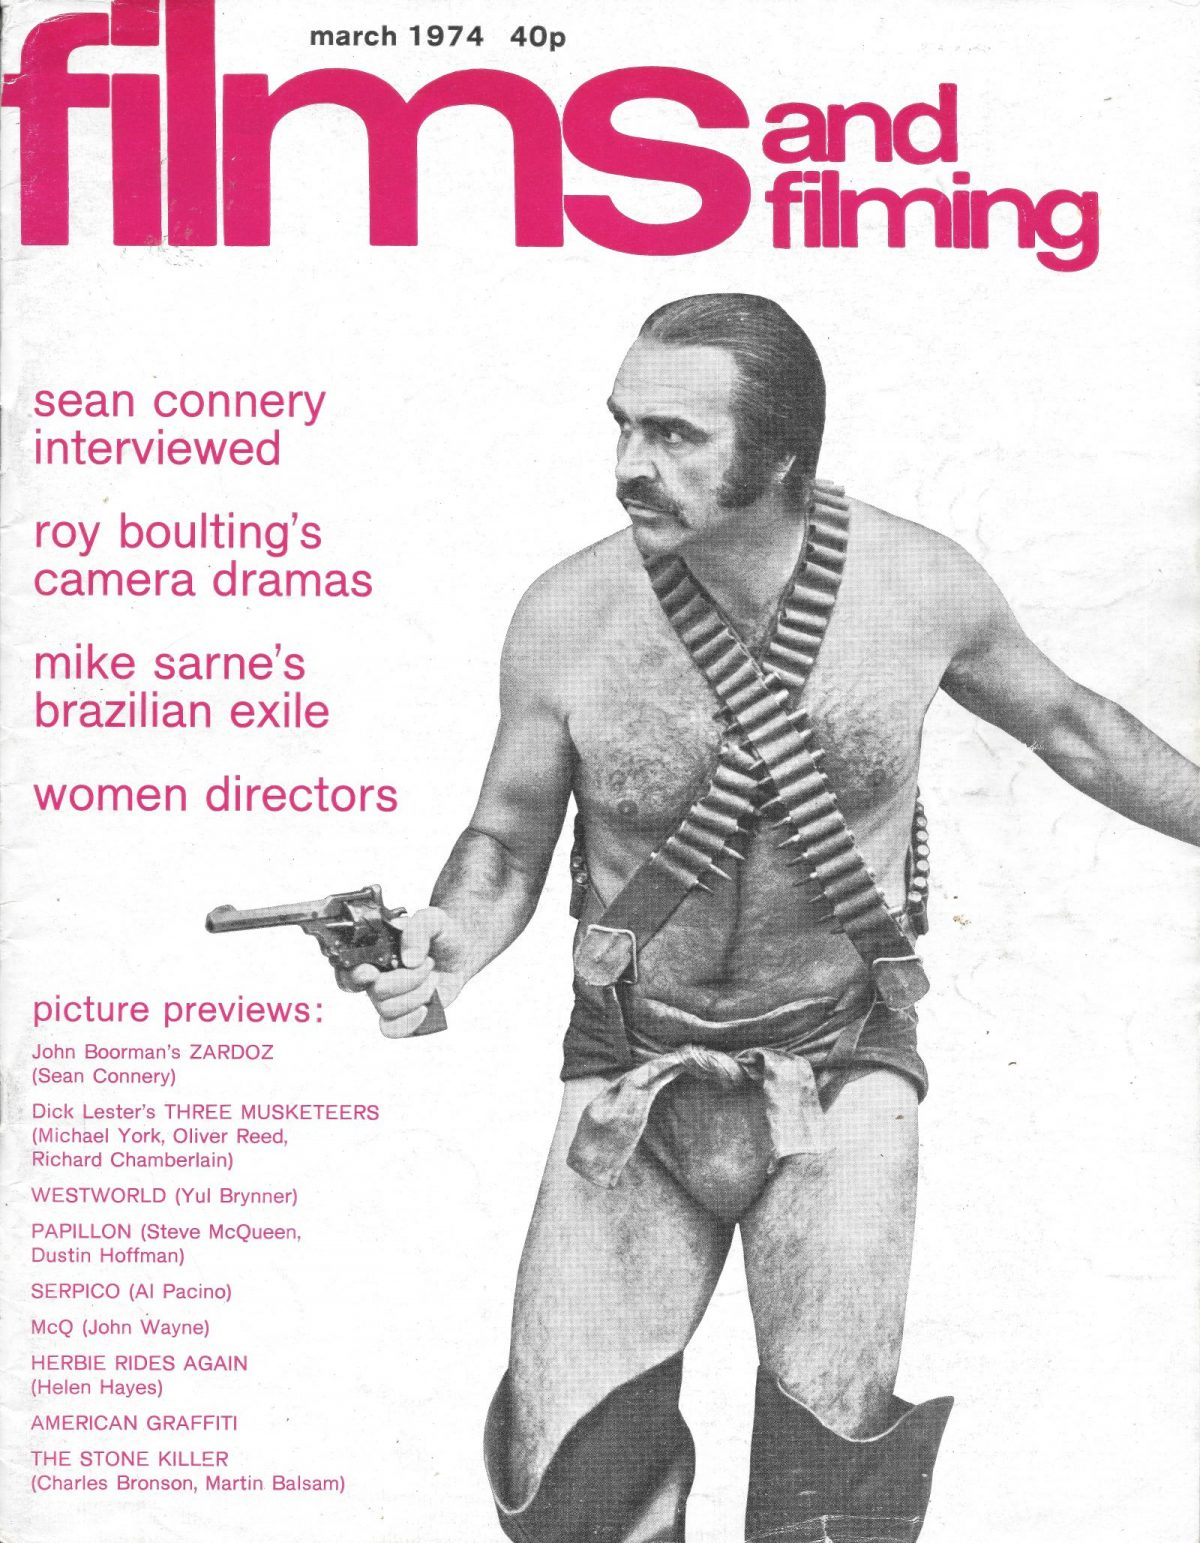 Films & Filming, film, magazines, John Boorman, Zardoz, Sean Connery, 1970s